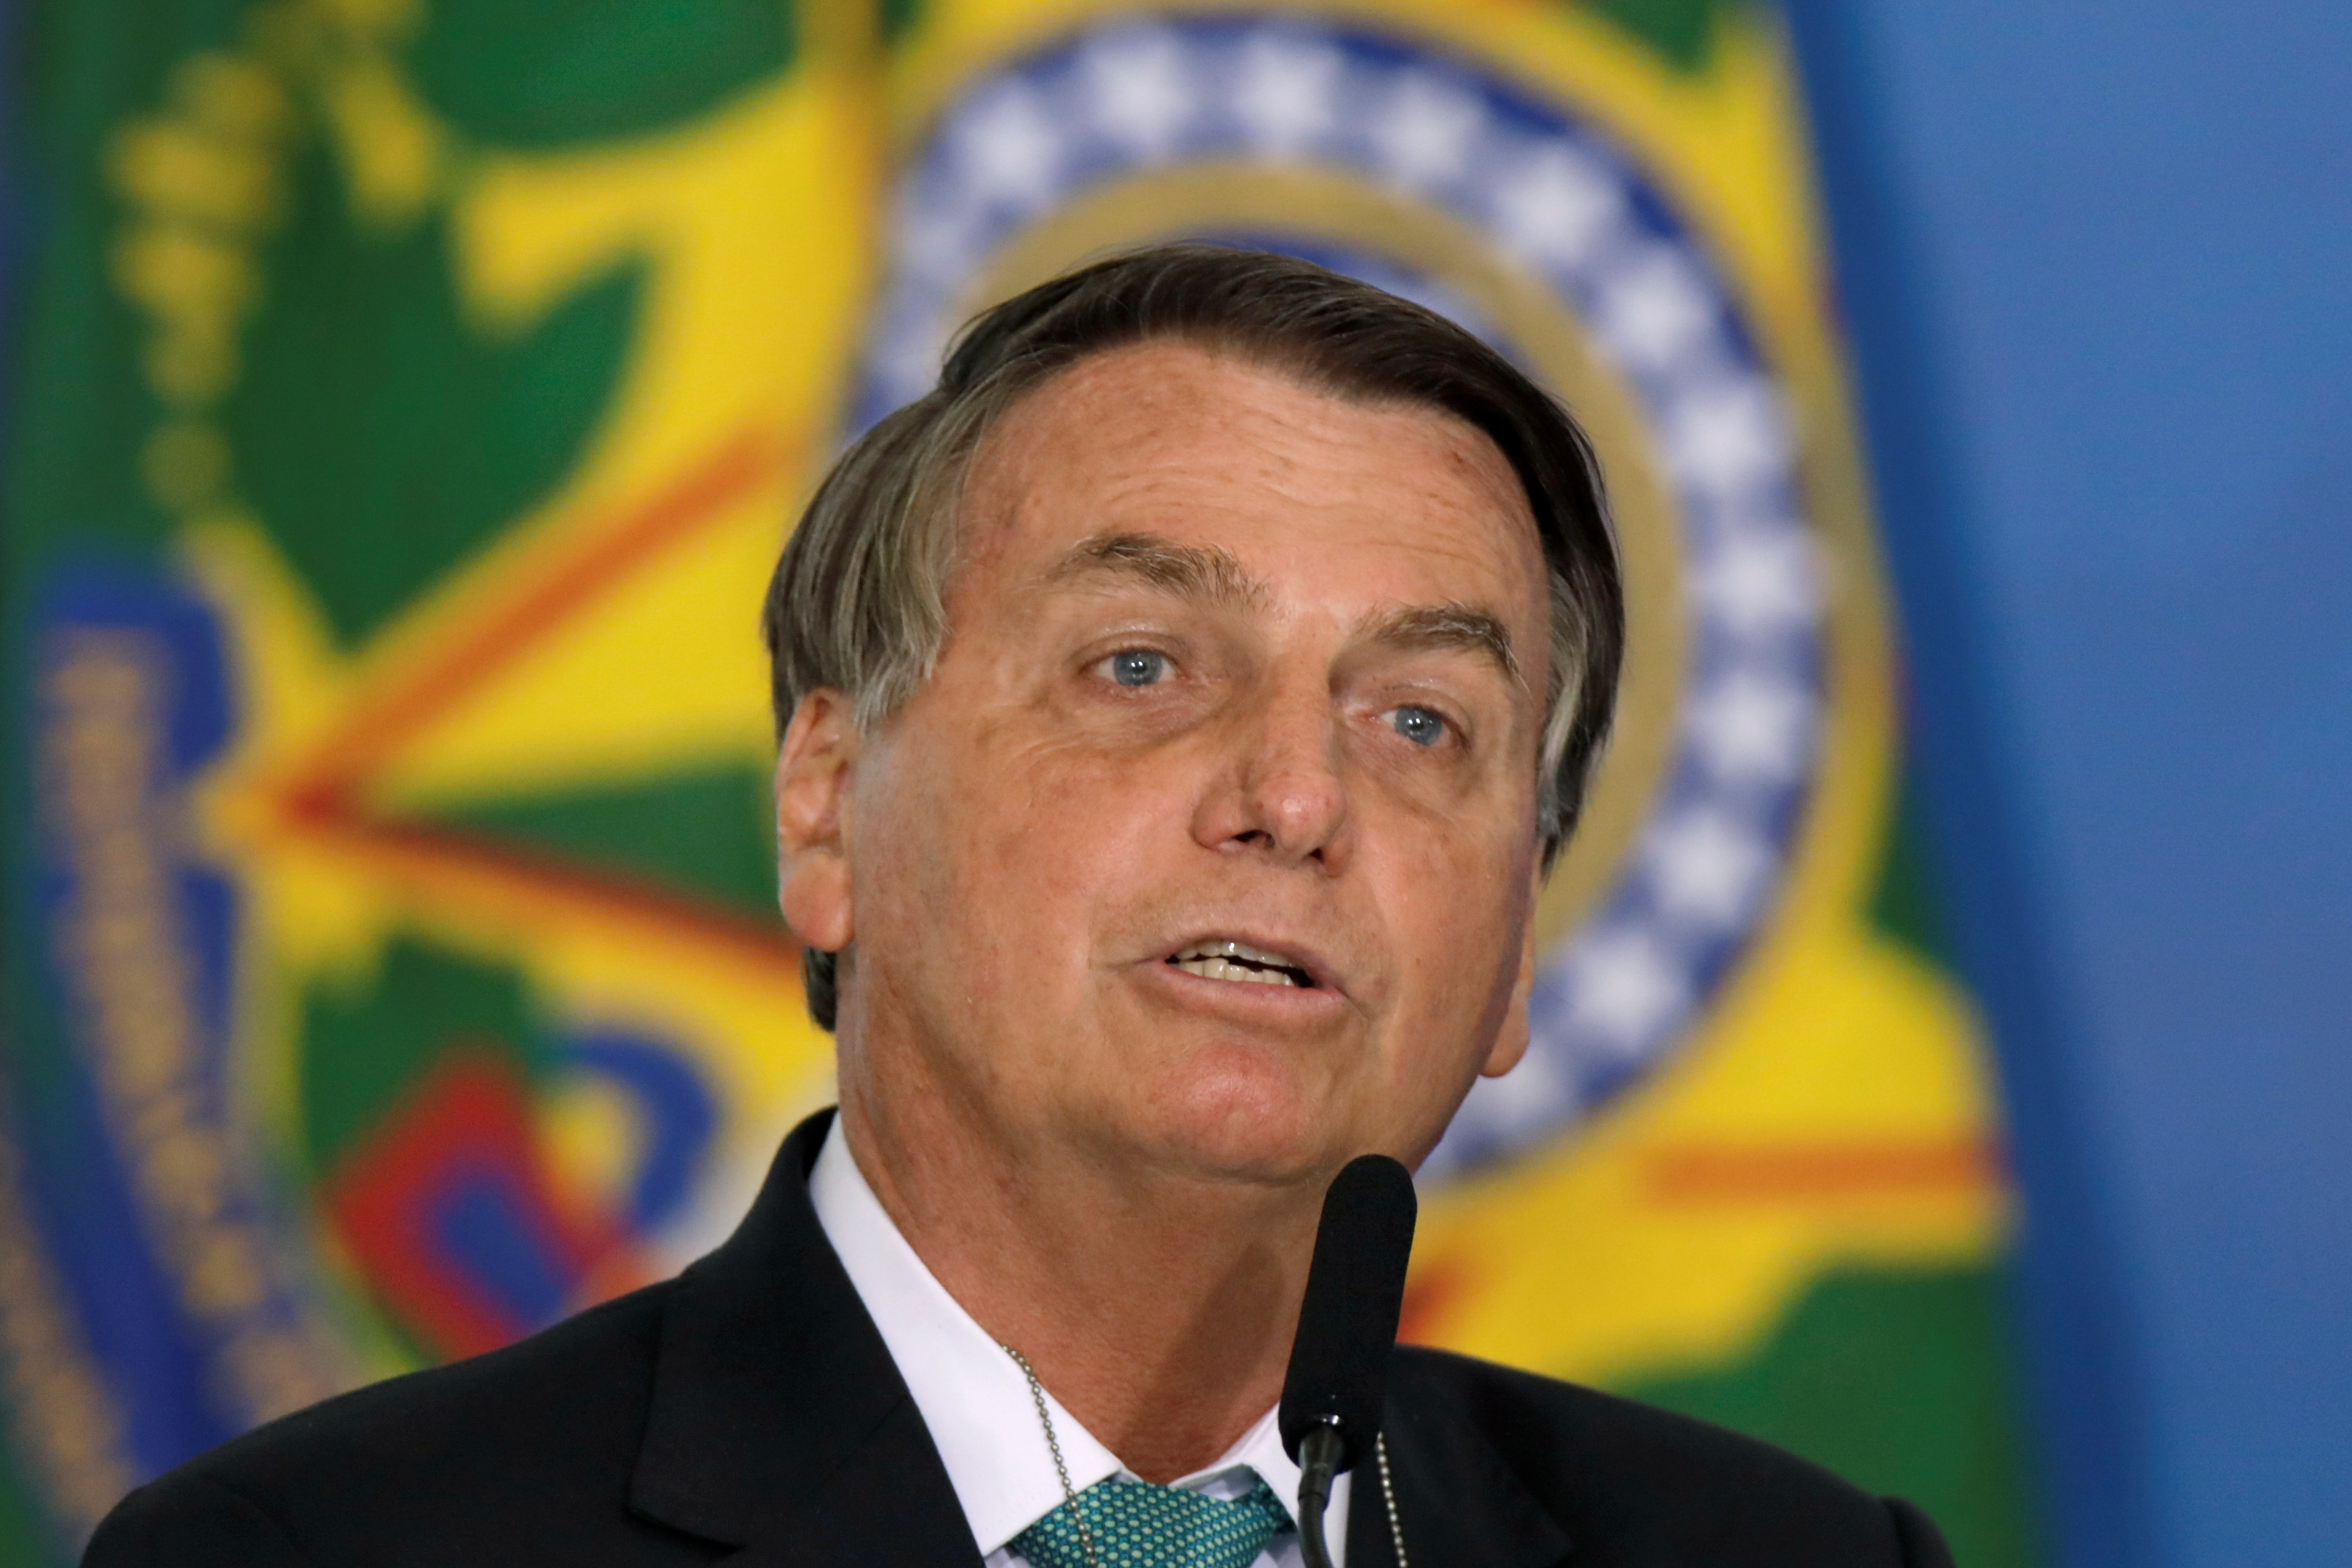 Brazil's President Jair Bolsonaro speaks about the countrys hosting the 2021 Copa America during a ceremony announcing the Caixa public bank sponsorship of Brazilian sport, in Brasilia, at the Planalto Palace in Brasilia, Brazil, June 1, 2021. REUTERS/Ueslei Marcelino